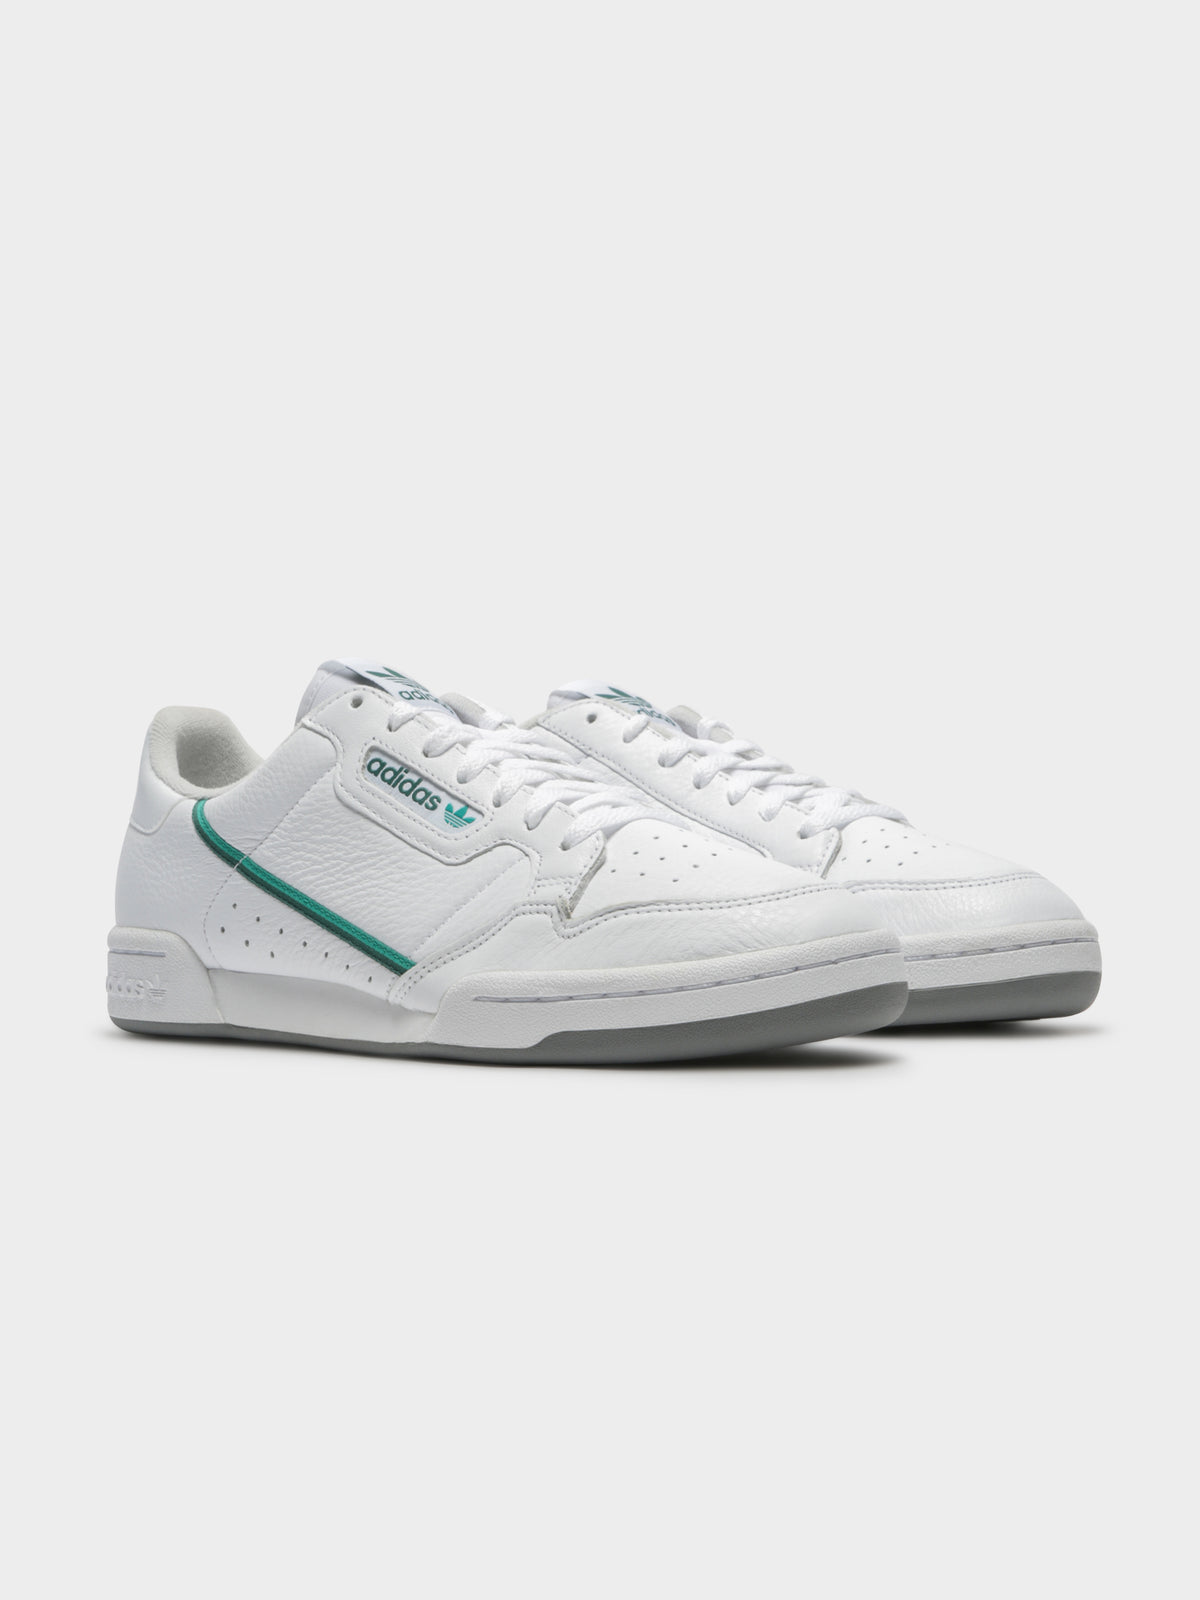 Mens Continental 80 Sneakers in Cloud White & Glory Green